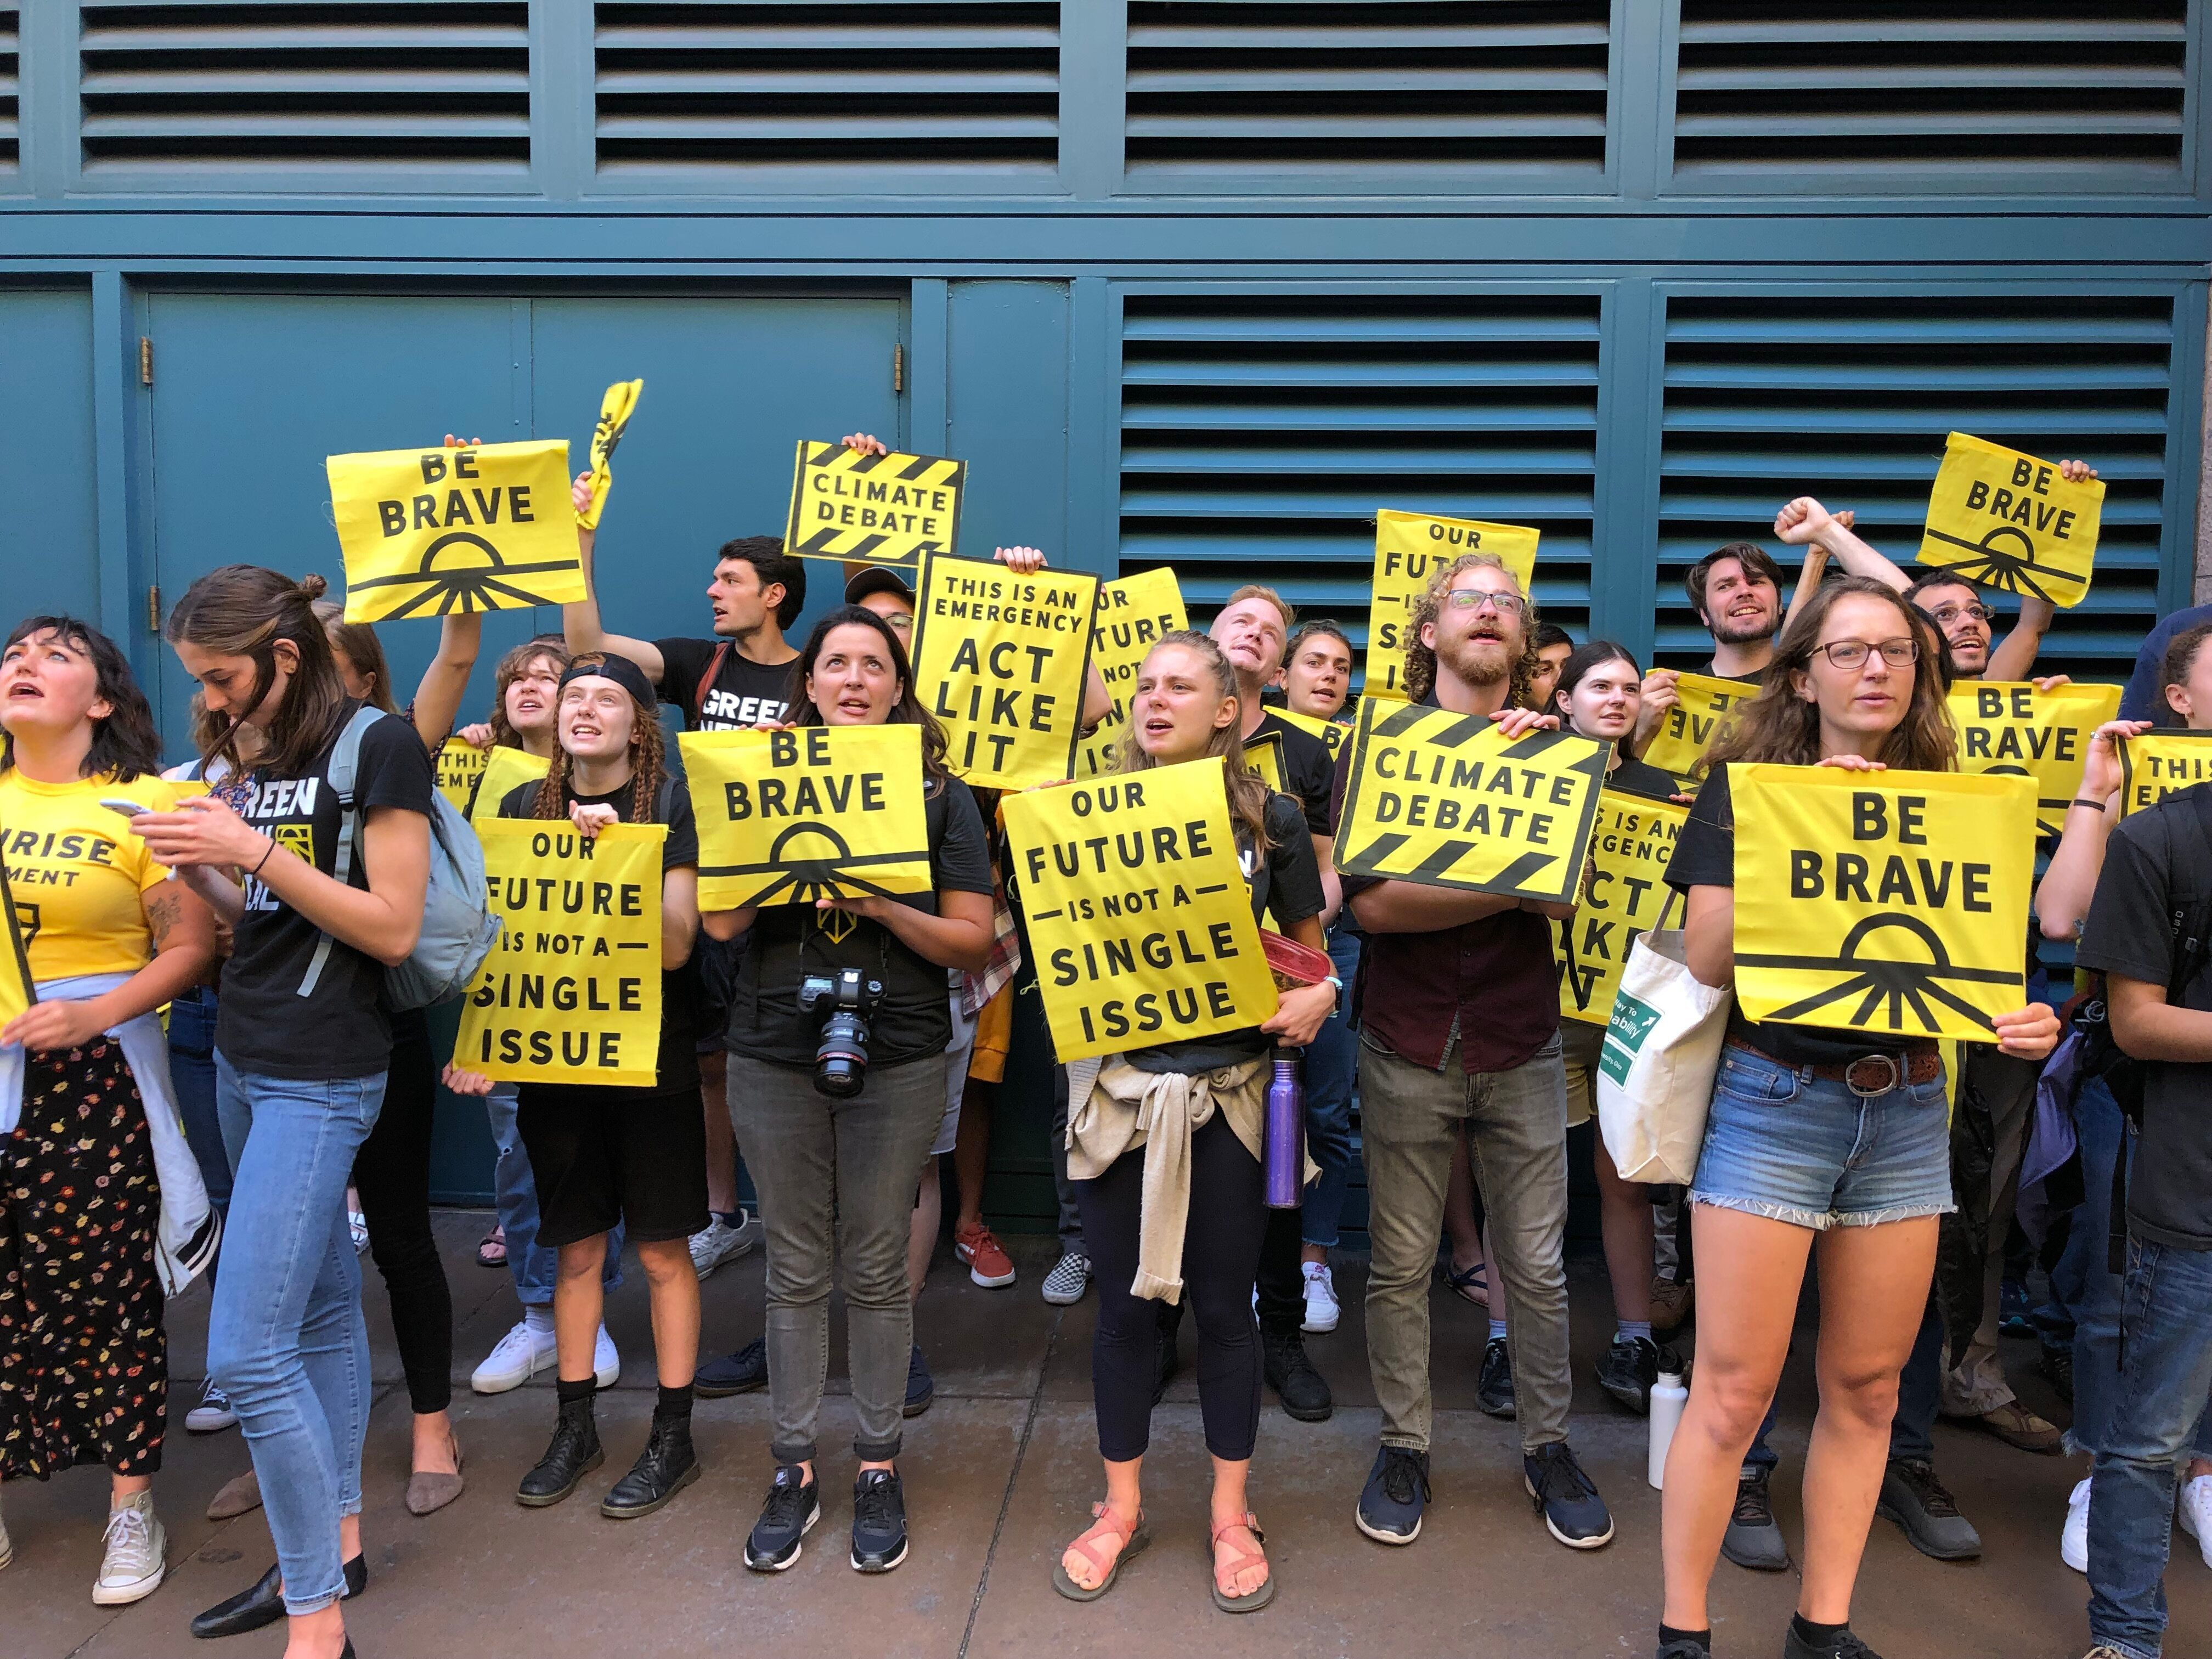 Sunrise Movement activists lobbied for a candidate debate focused solely on climate change outside the DNC's meeting Friday i